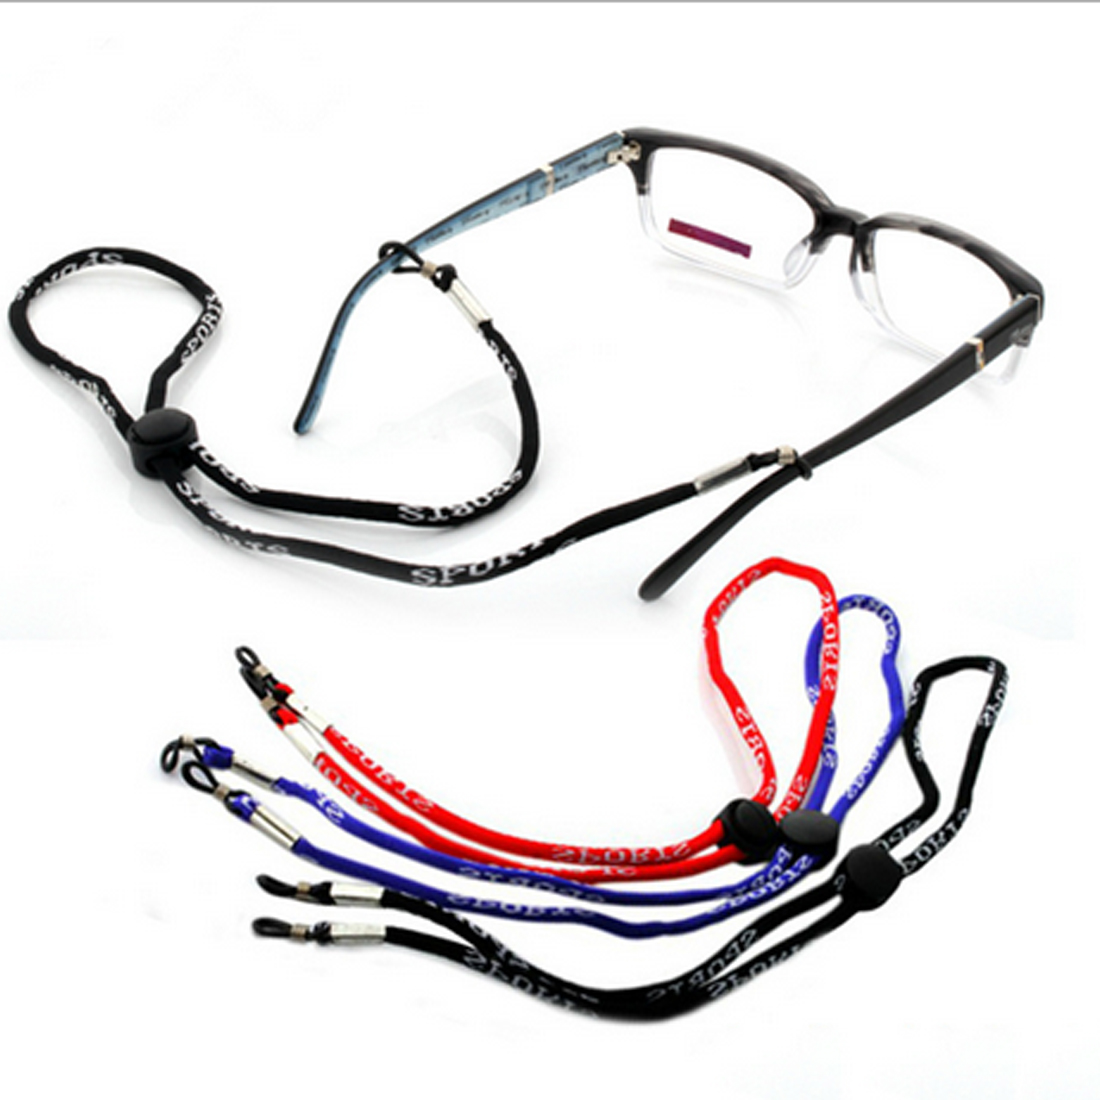 Adjustable eyeglasses strap rope sunglasses neck cord glasses string